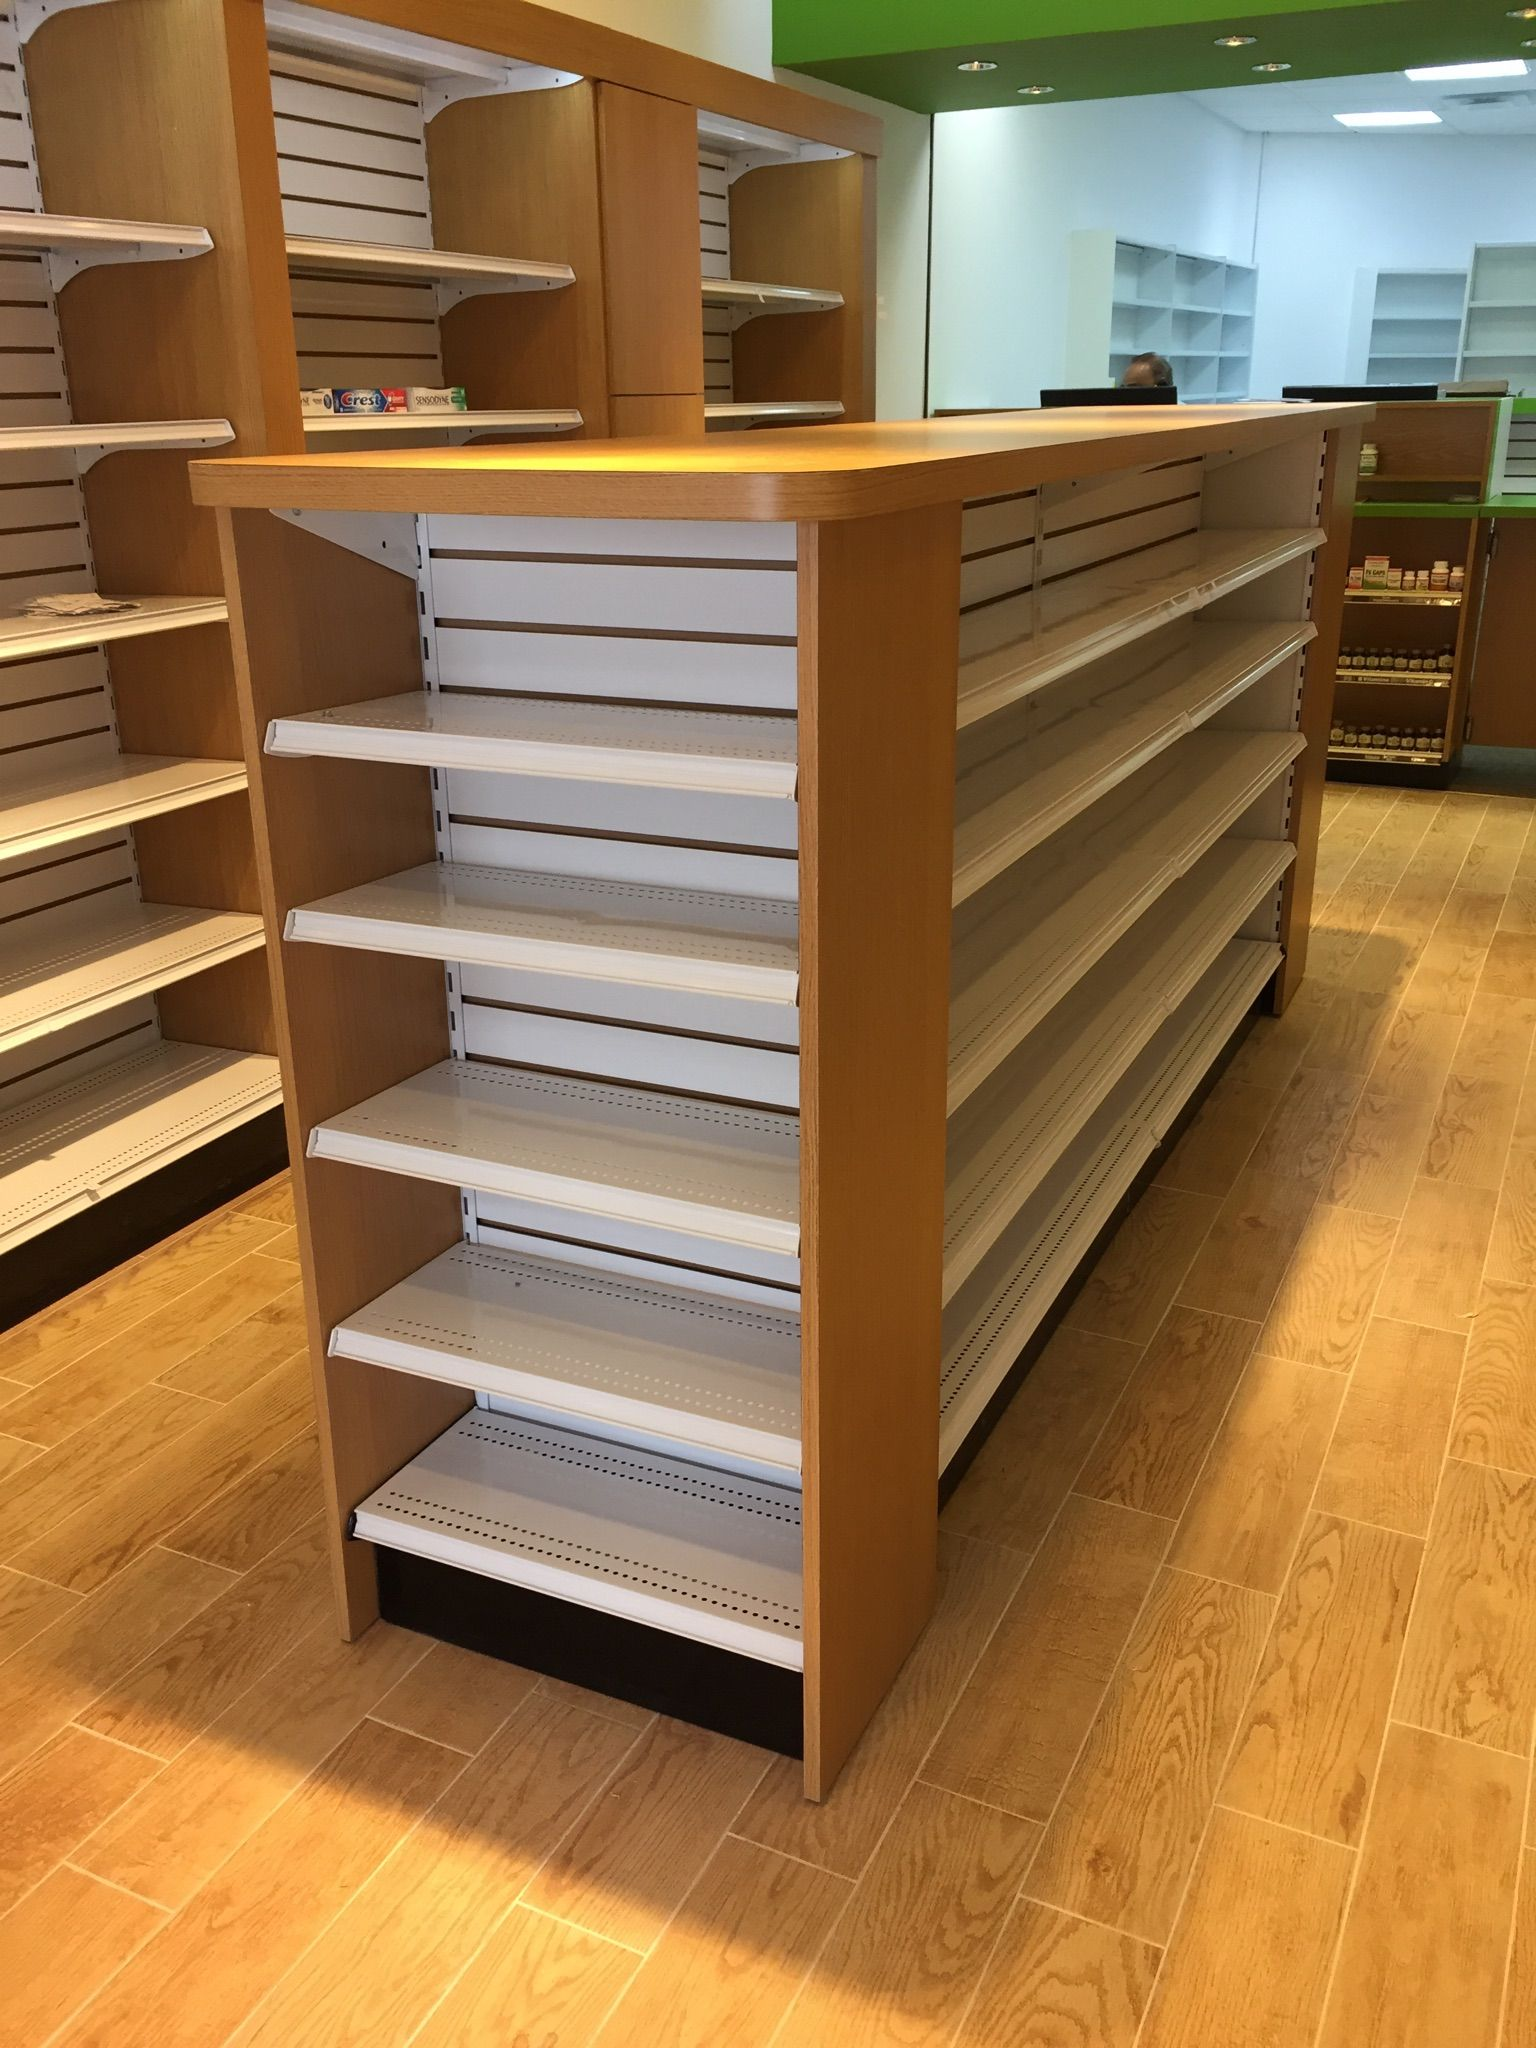 Rx Wood Top Gondola Shelving From Handy Store Fixtures Moveis